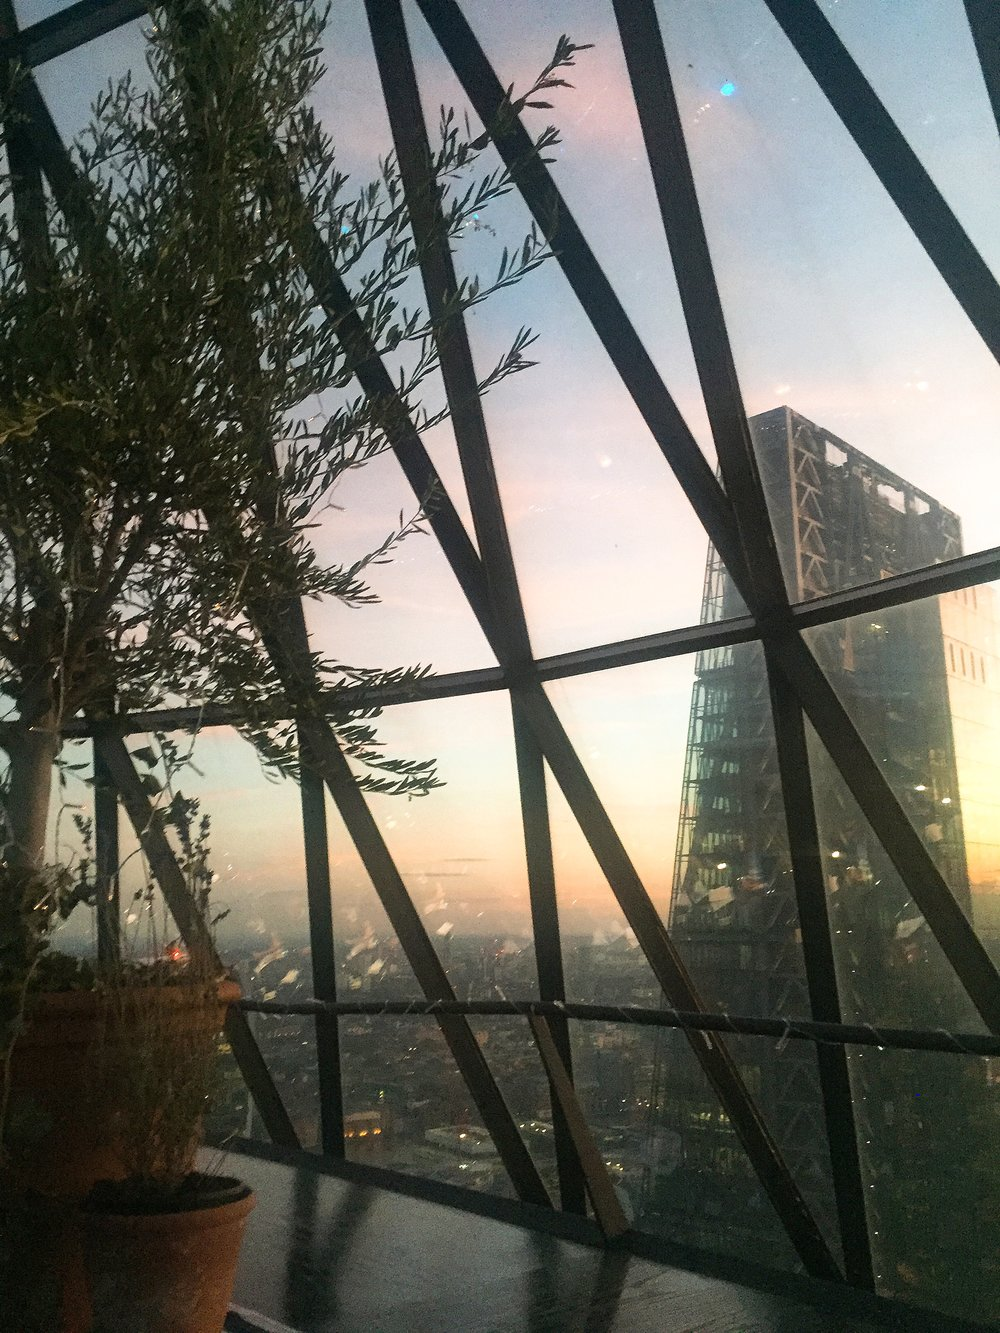 Views across London - Summer Sky Riviera, Searcys at The Gherkin